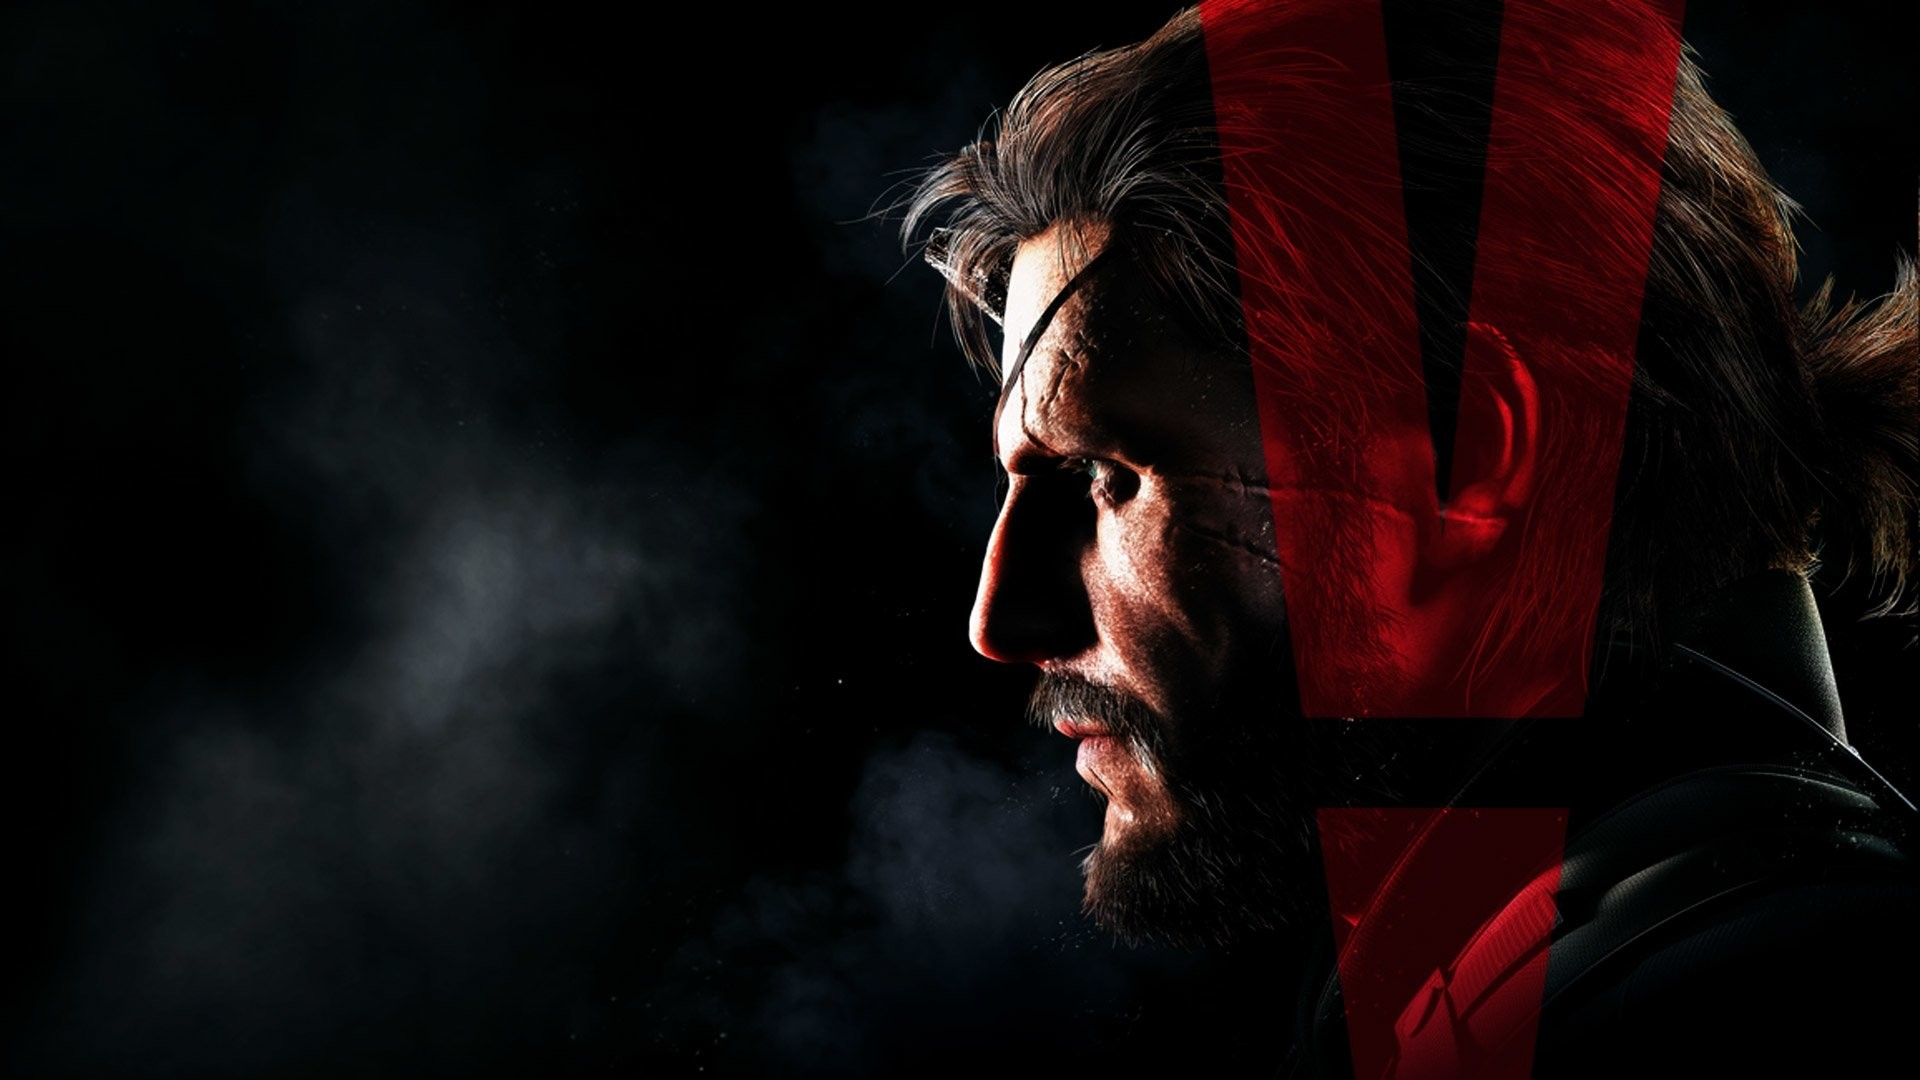 Metal Gear Solid V: The Phantom Pain Solid Snake · HD Wallpaper |  Background ID:564986